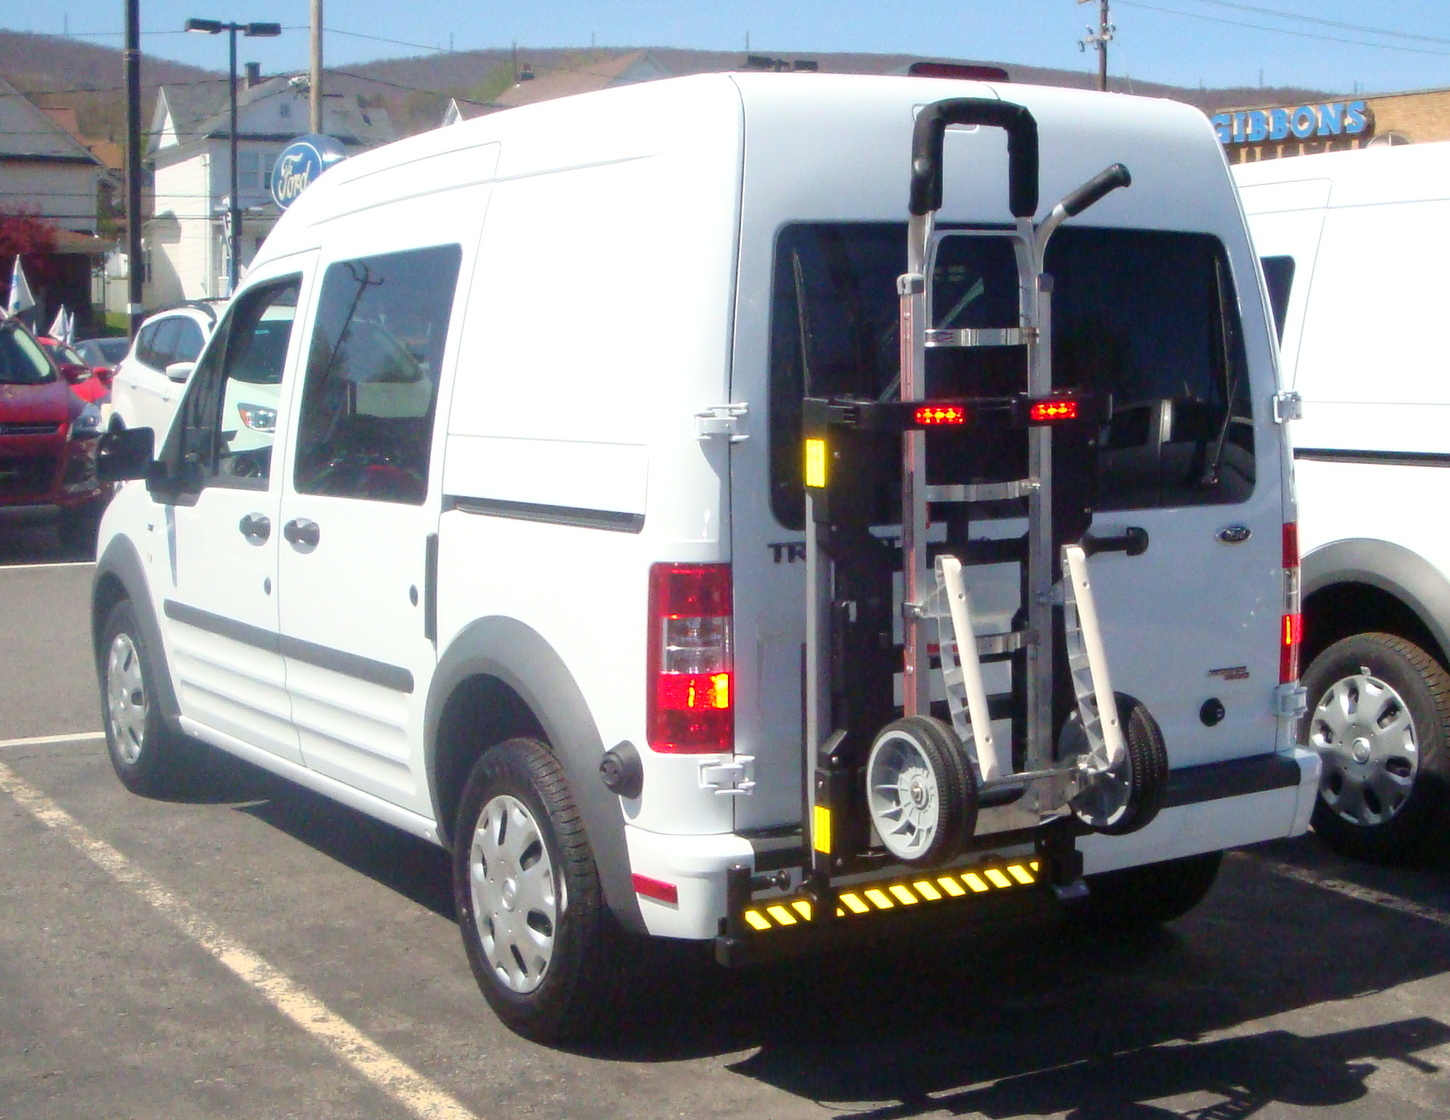 file ford transit mini cargo van hts systems hts wikimedia commons. Black Bedroom Furniture Sets. Home Design Ideas